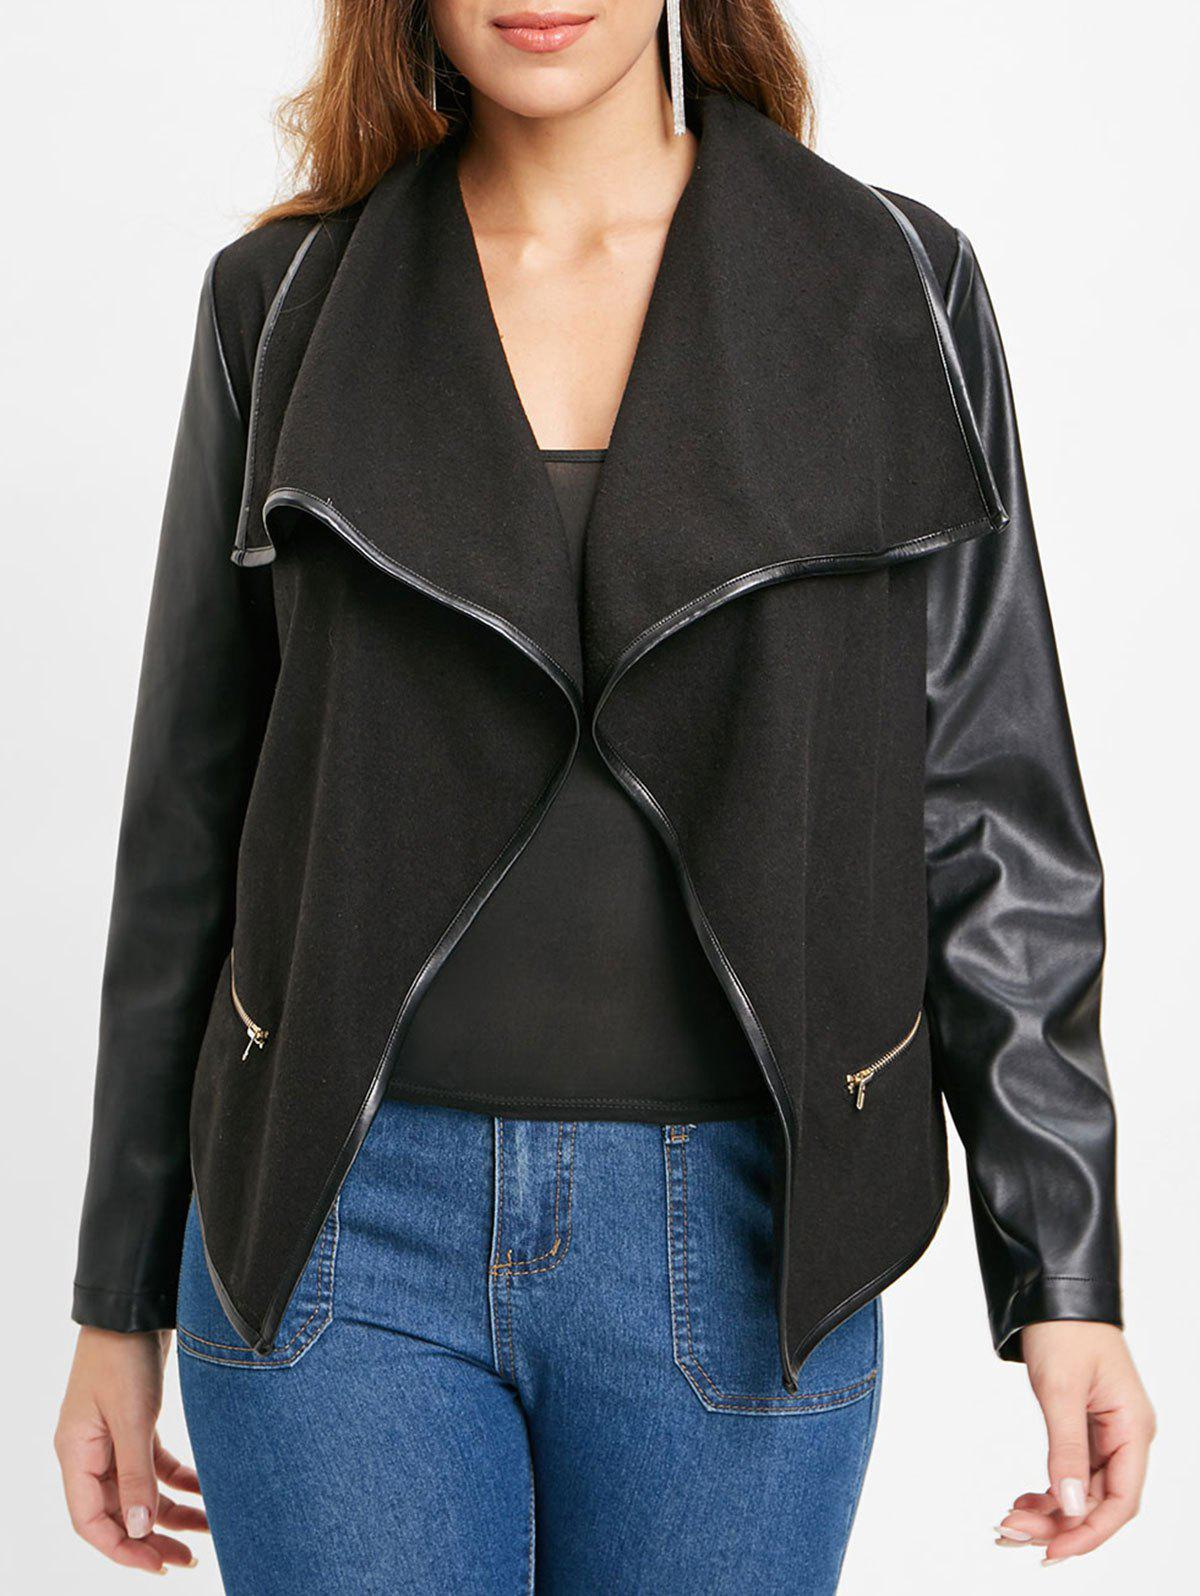 Hot PU Leather Panel Jacket with Zipper